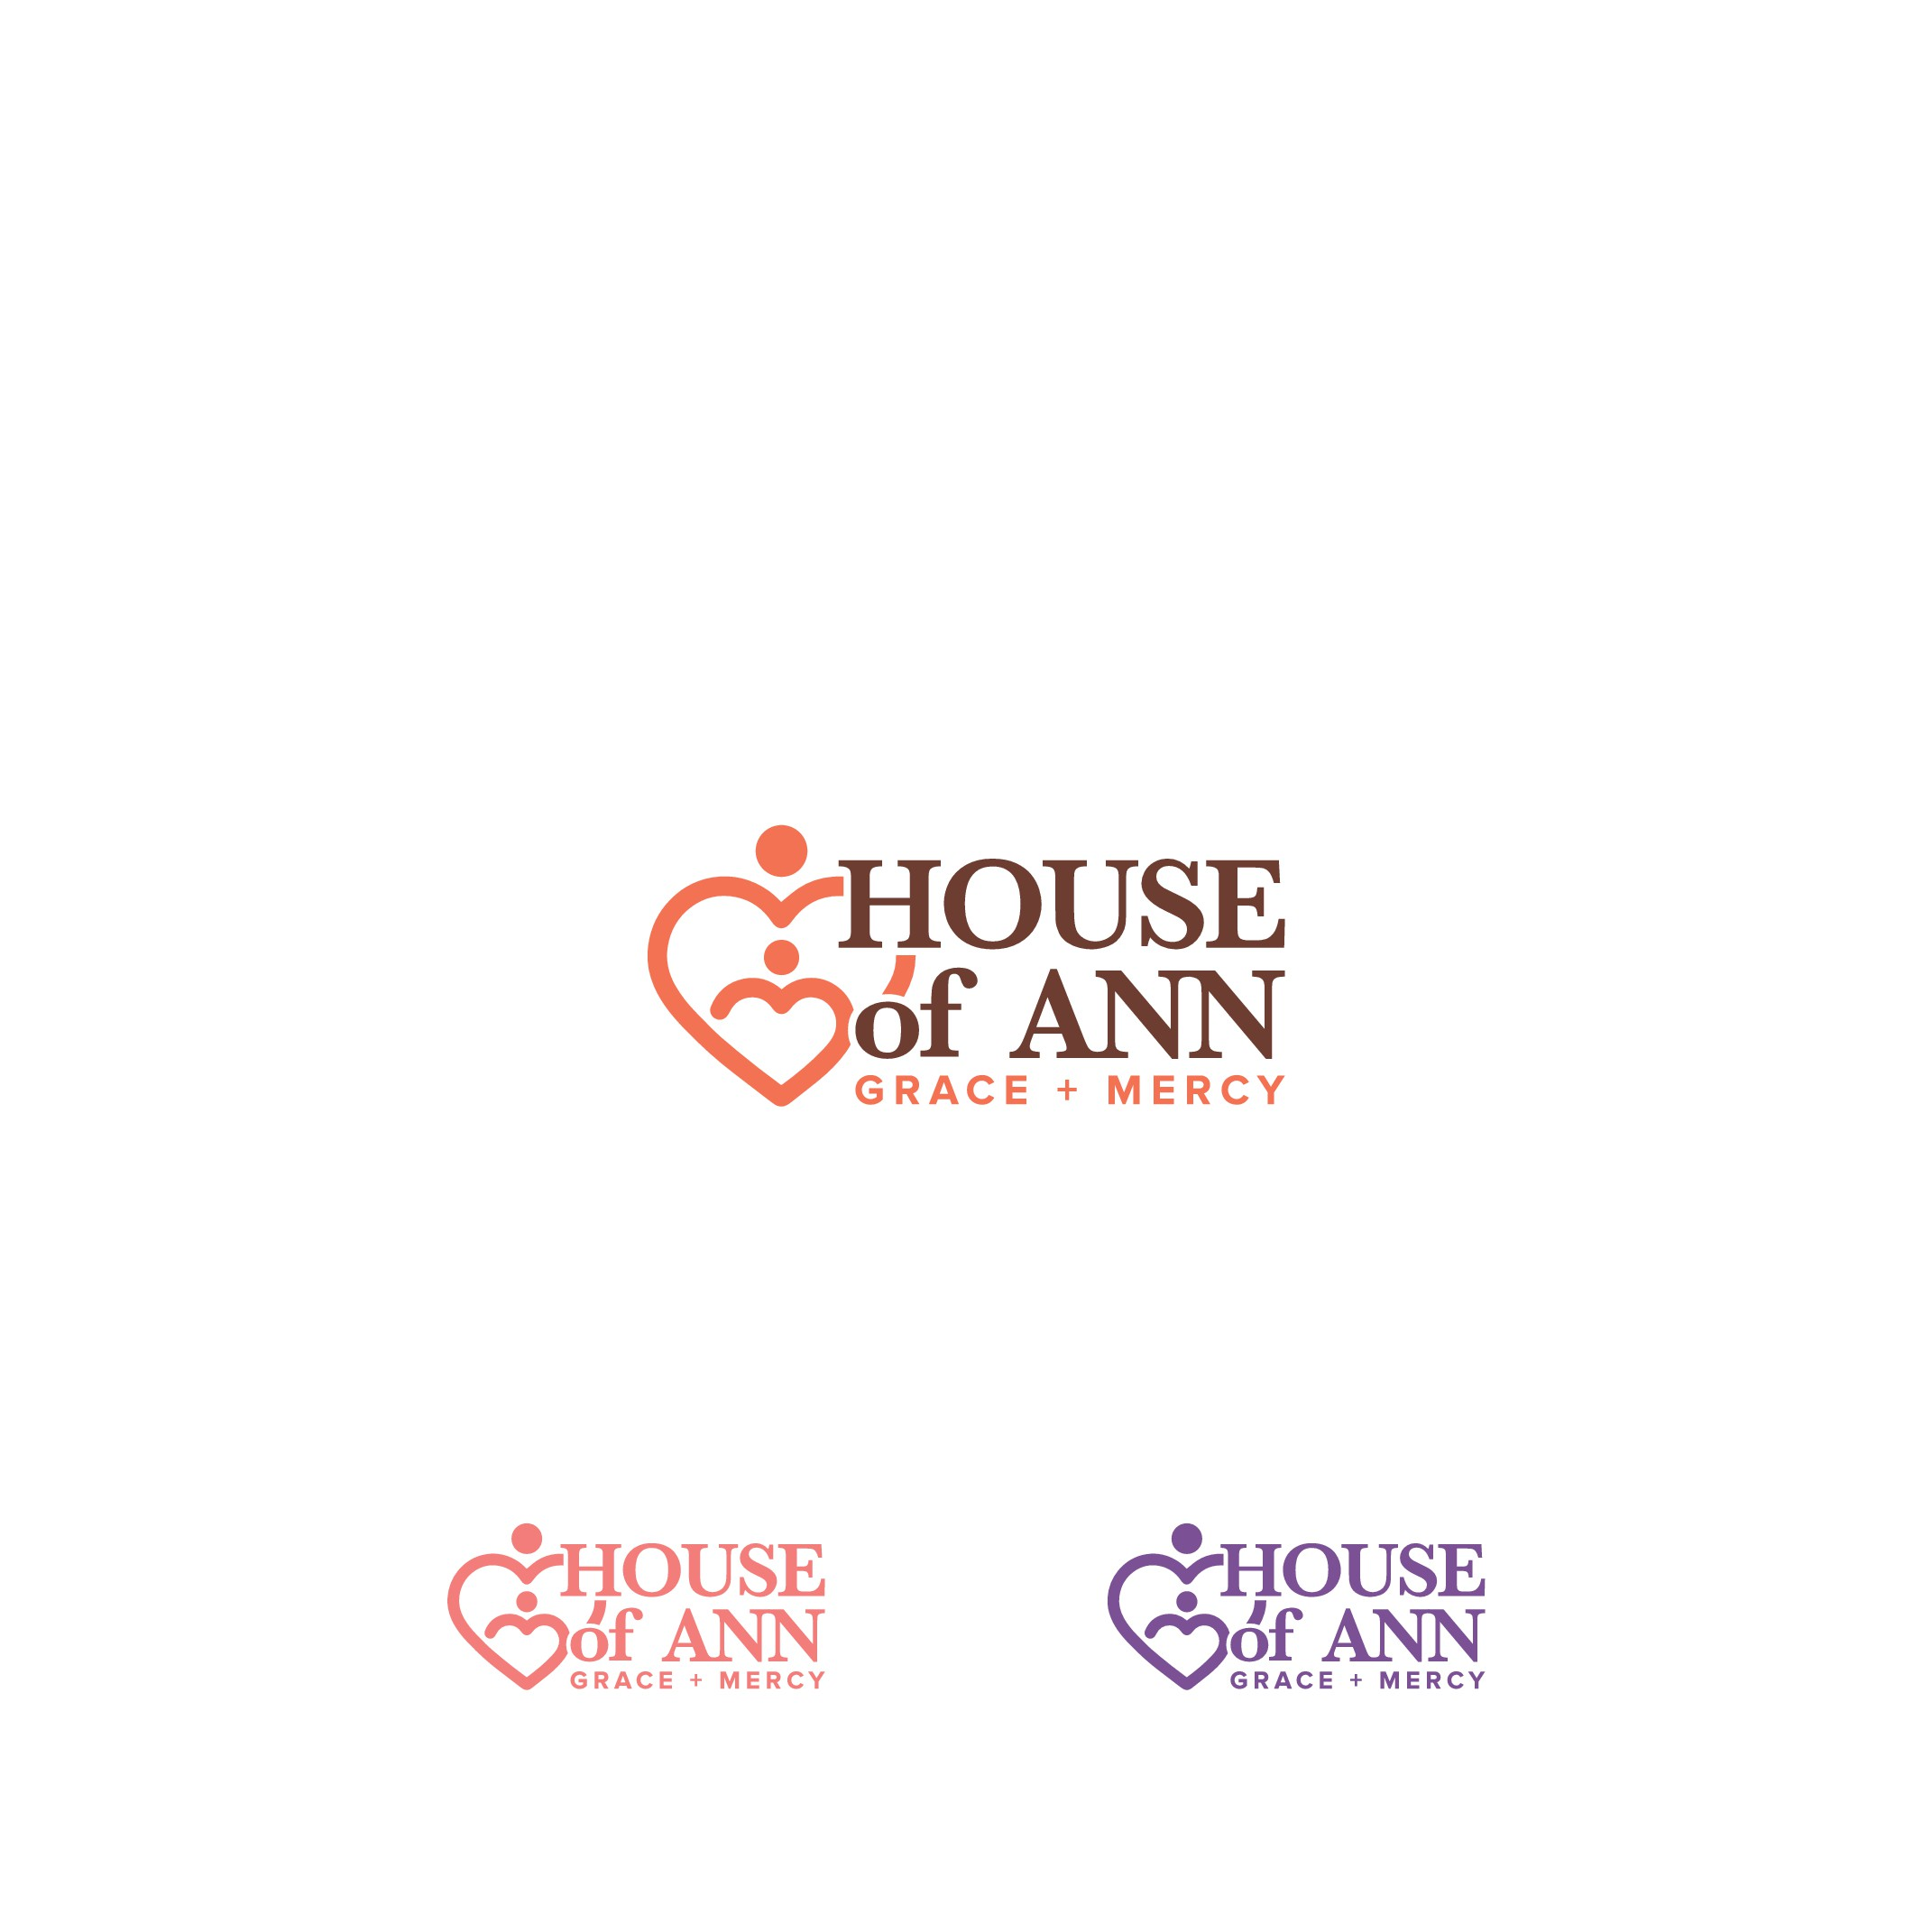 Designers help me to change victims of domestic violence lives by providing a great logo.